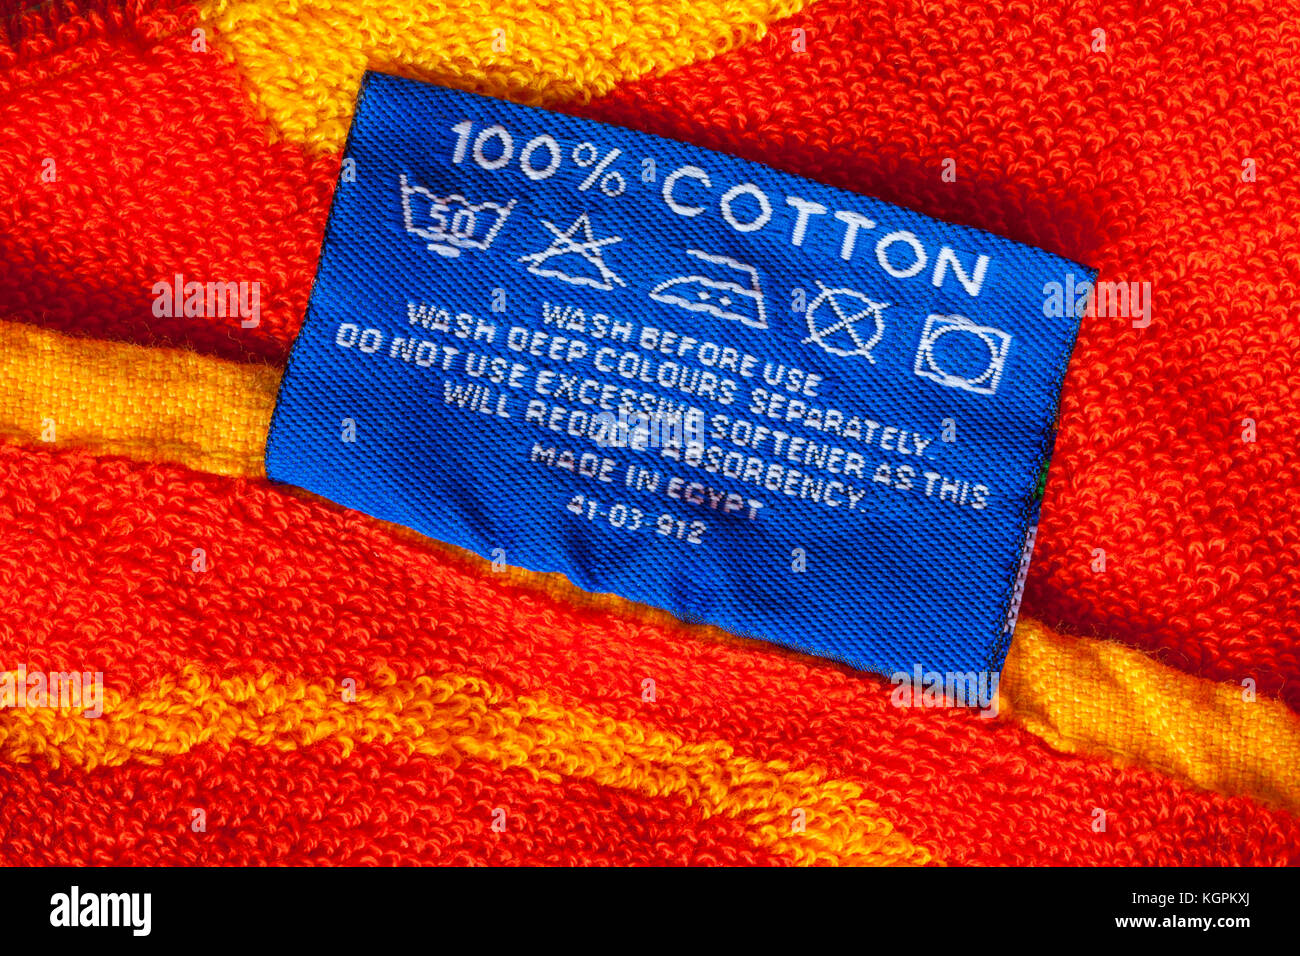 Washing symbols stock photos washing symbols stock images alamy 100 cotton with care wash symbols label on beach towel made in egypt sold biocorpaavc Choice Image